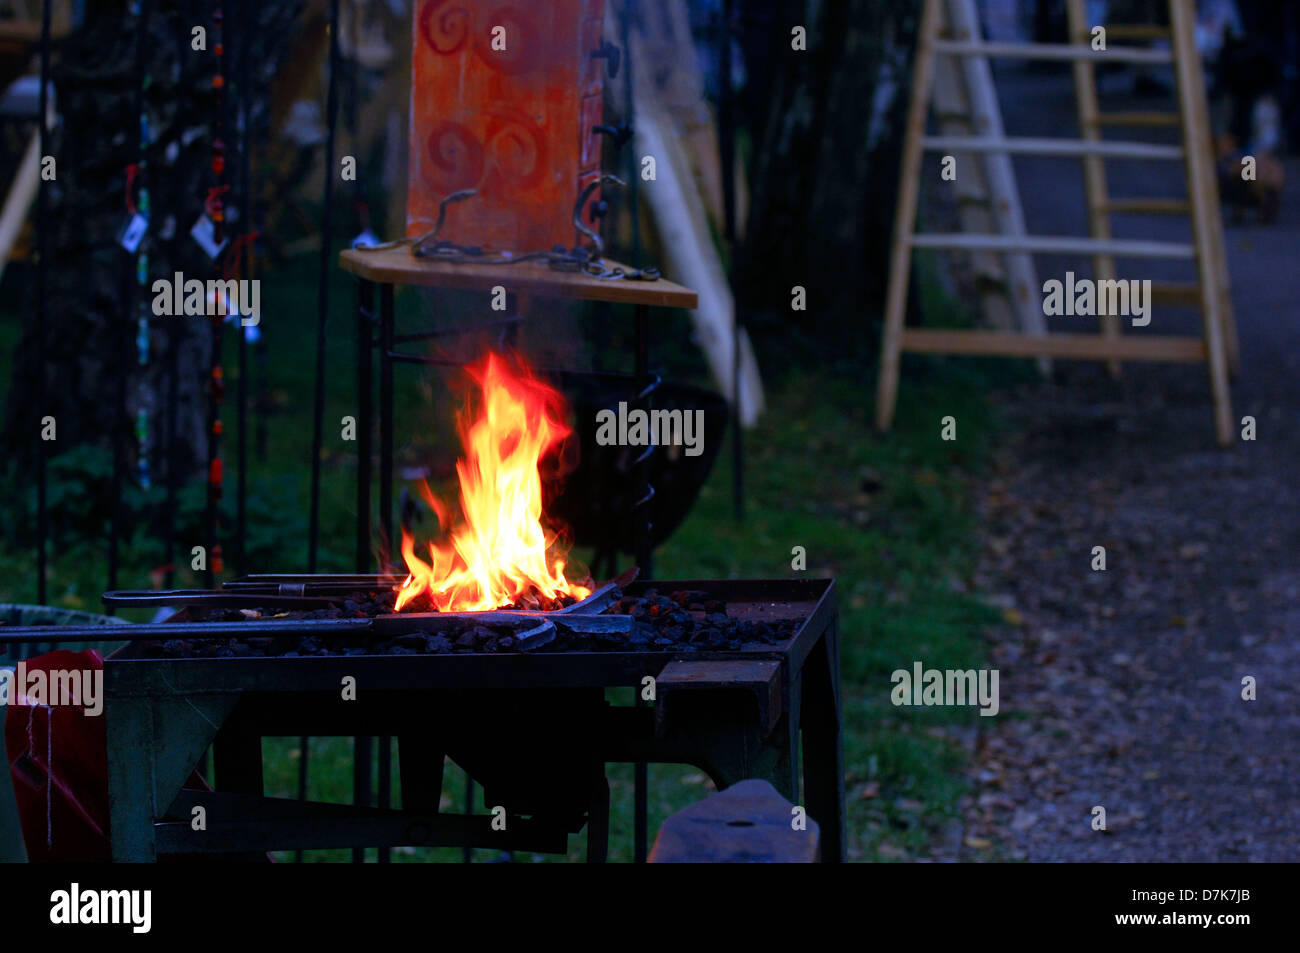 Blacksmith, forge, Stoke, forging, fireplace, embers glow - Stock Image